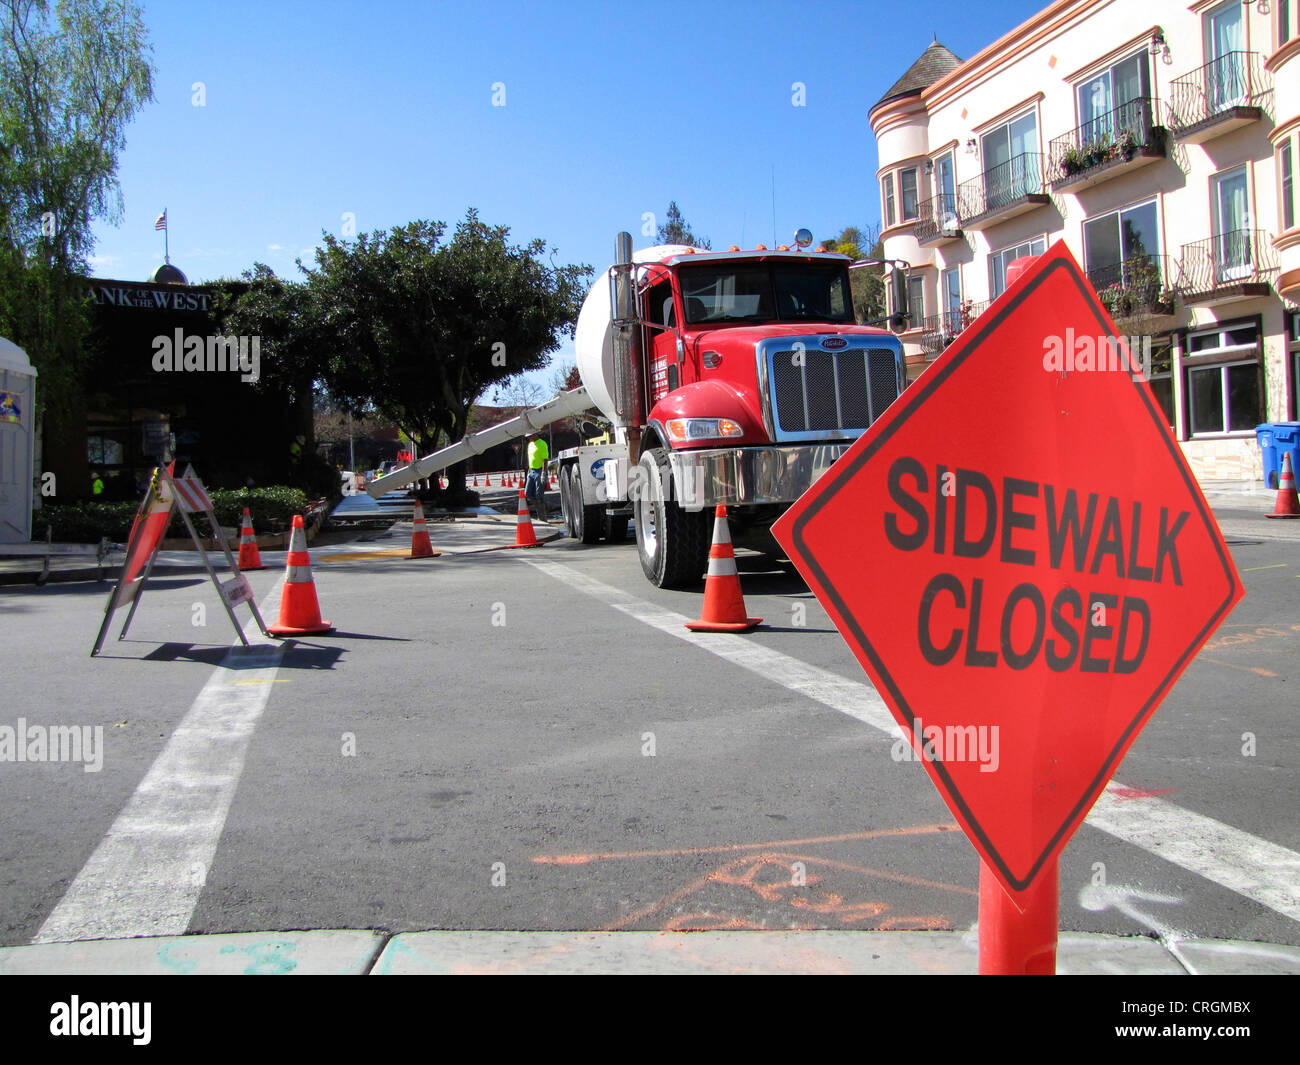 Traffic sign displaying temporary closure of side walk at construction site, cement mixer in the background, USA, - Stock Image